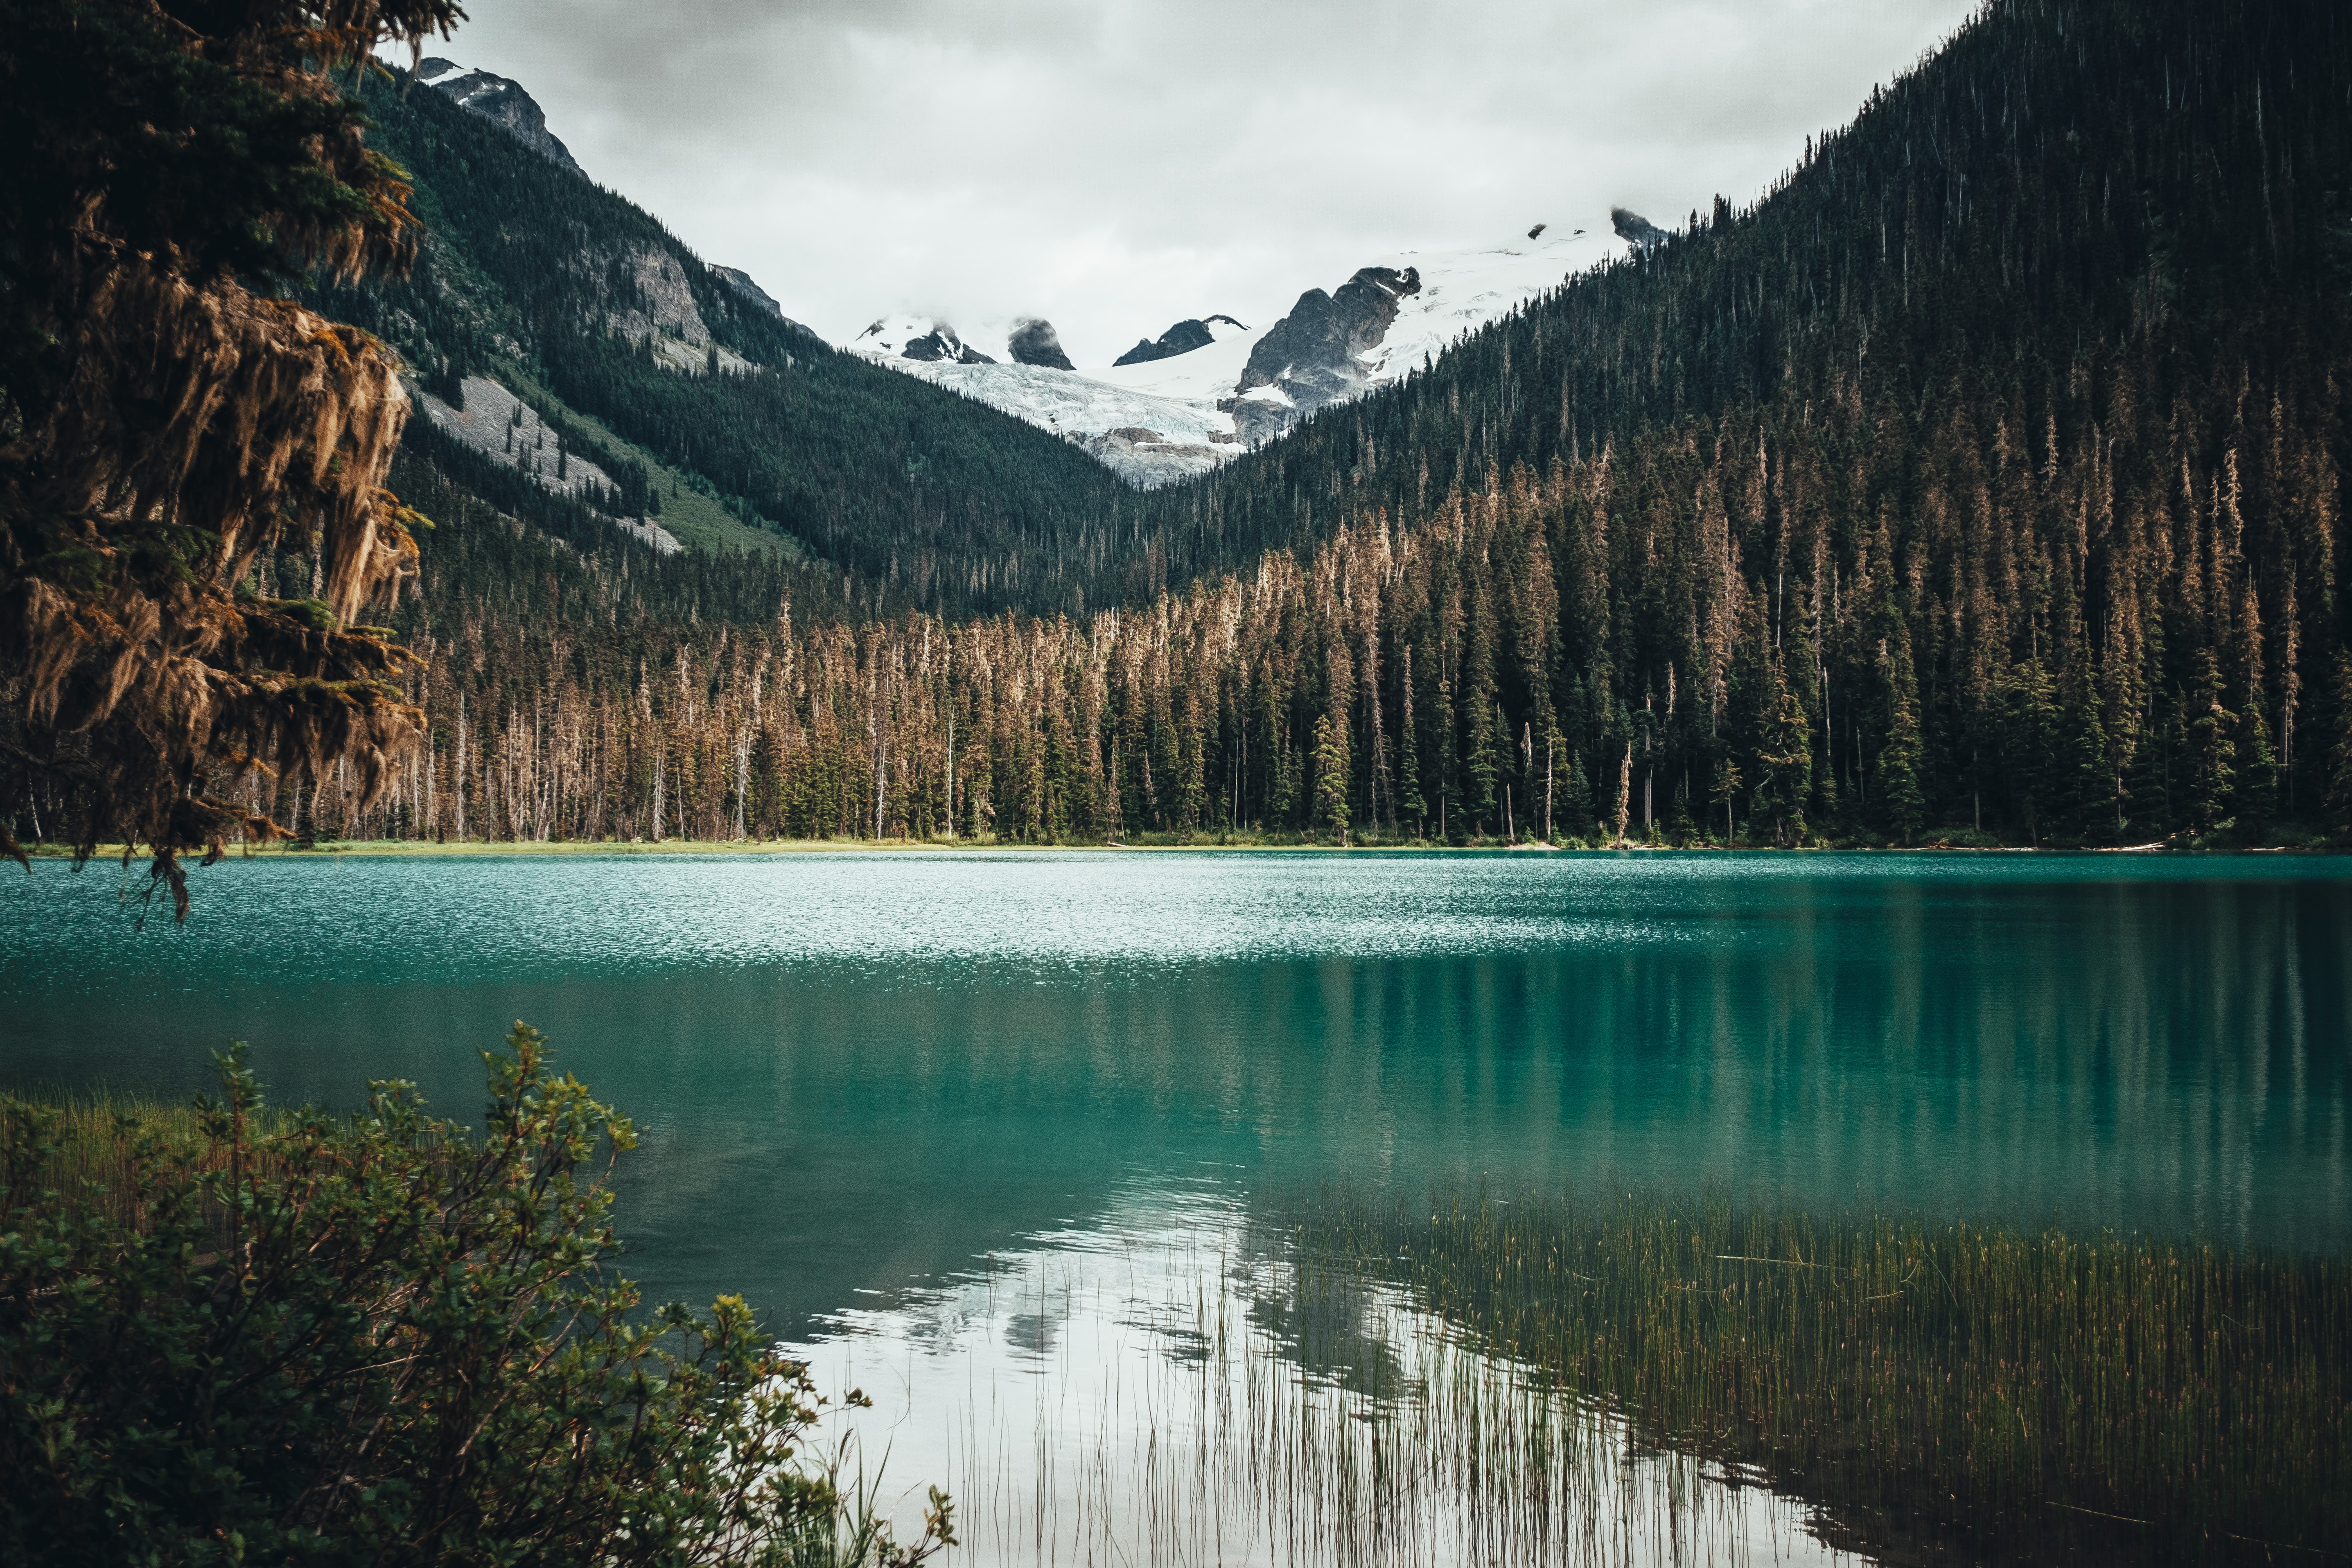 scenery of body of water near a forest